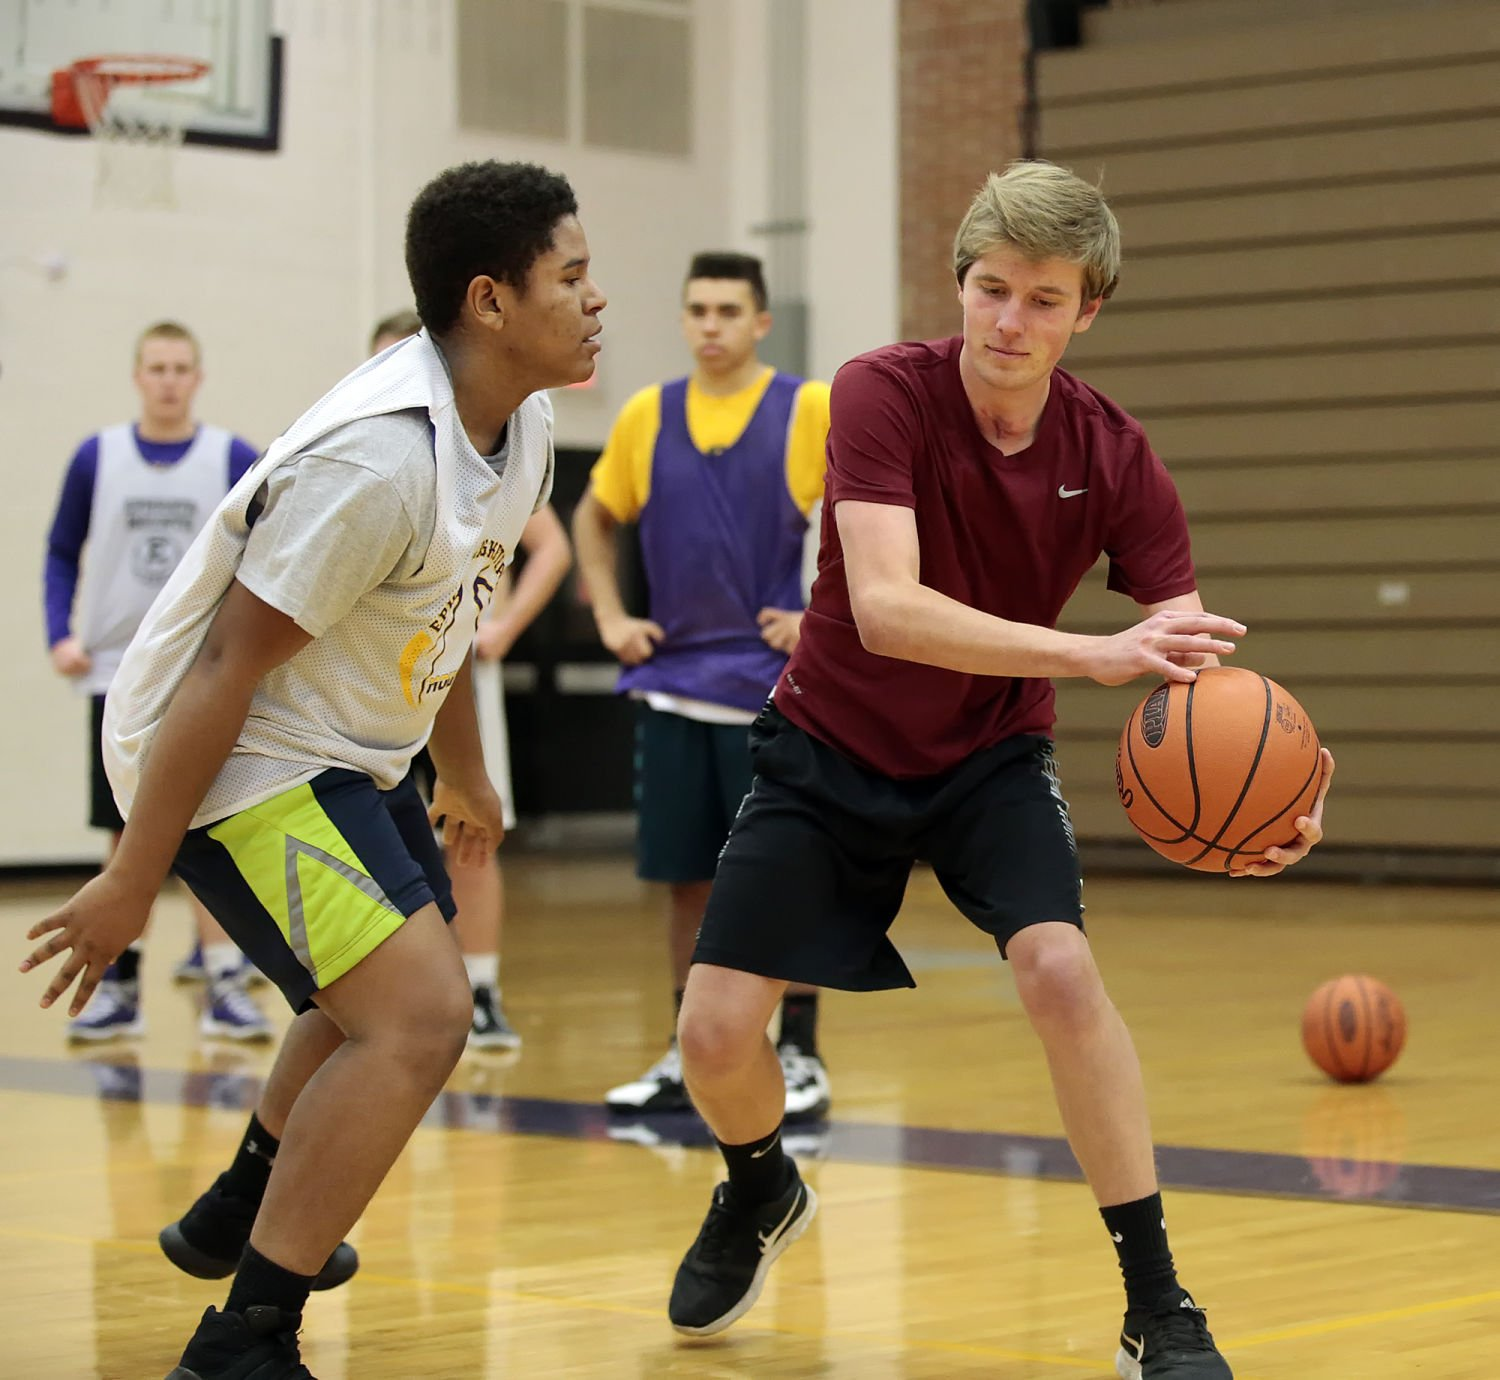 basketball coach cover letter%0A Still recovering from harrowing year  Ephrata senior Brendan Holbritter at  peace with not playing basketball   Local News   lancasteronline com